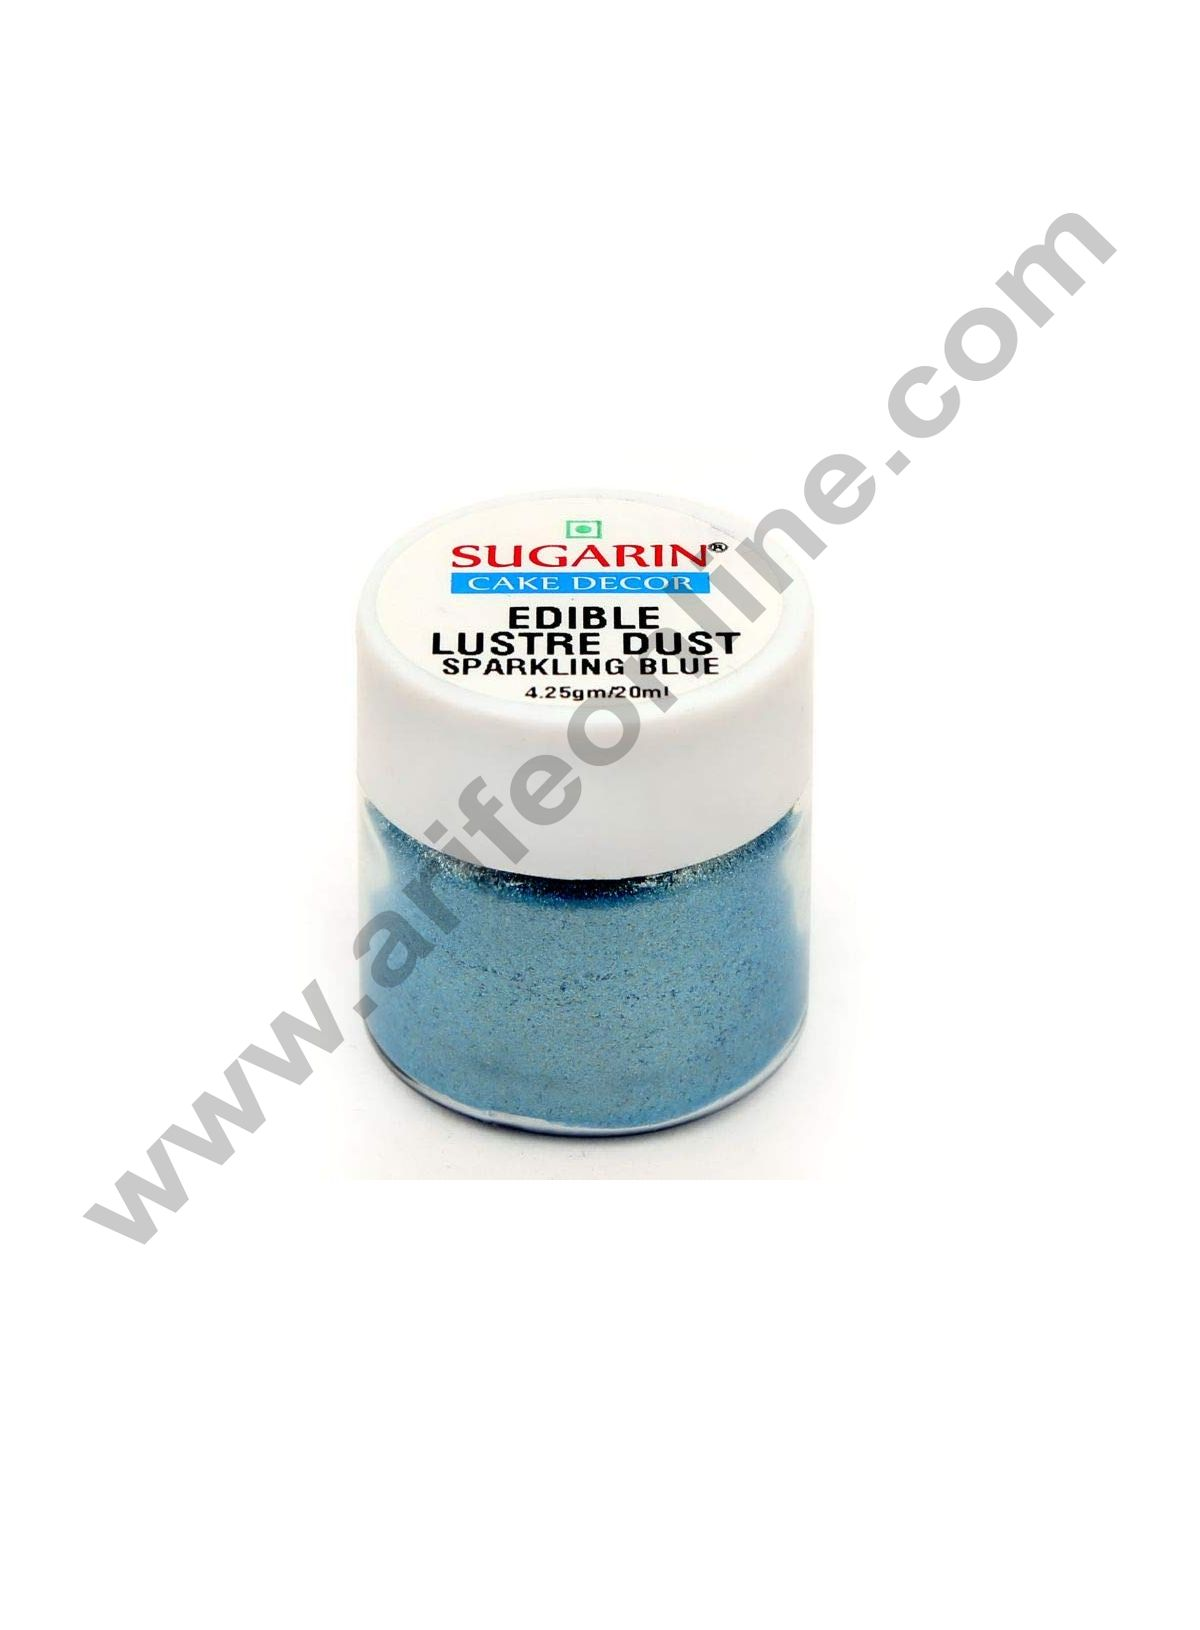 Sugarin Edible Lustre Dust,Sparkling Blue 4.25gm